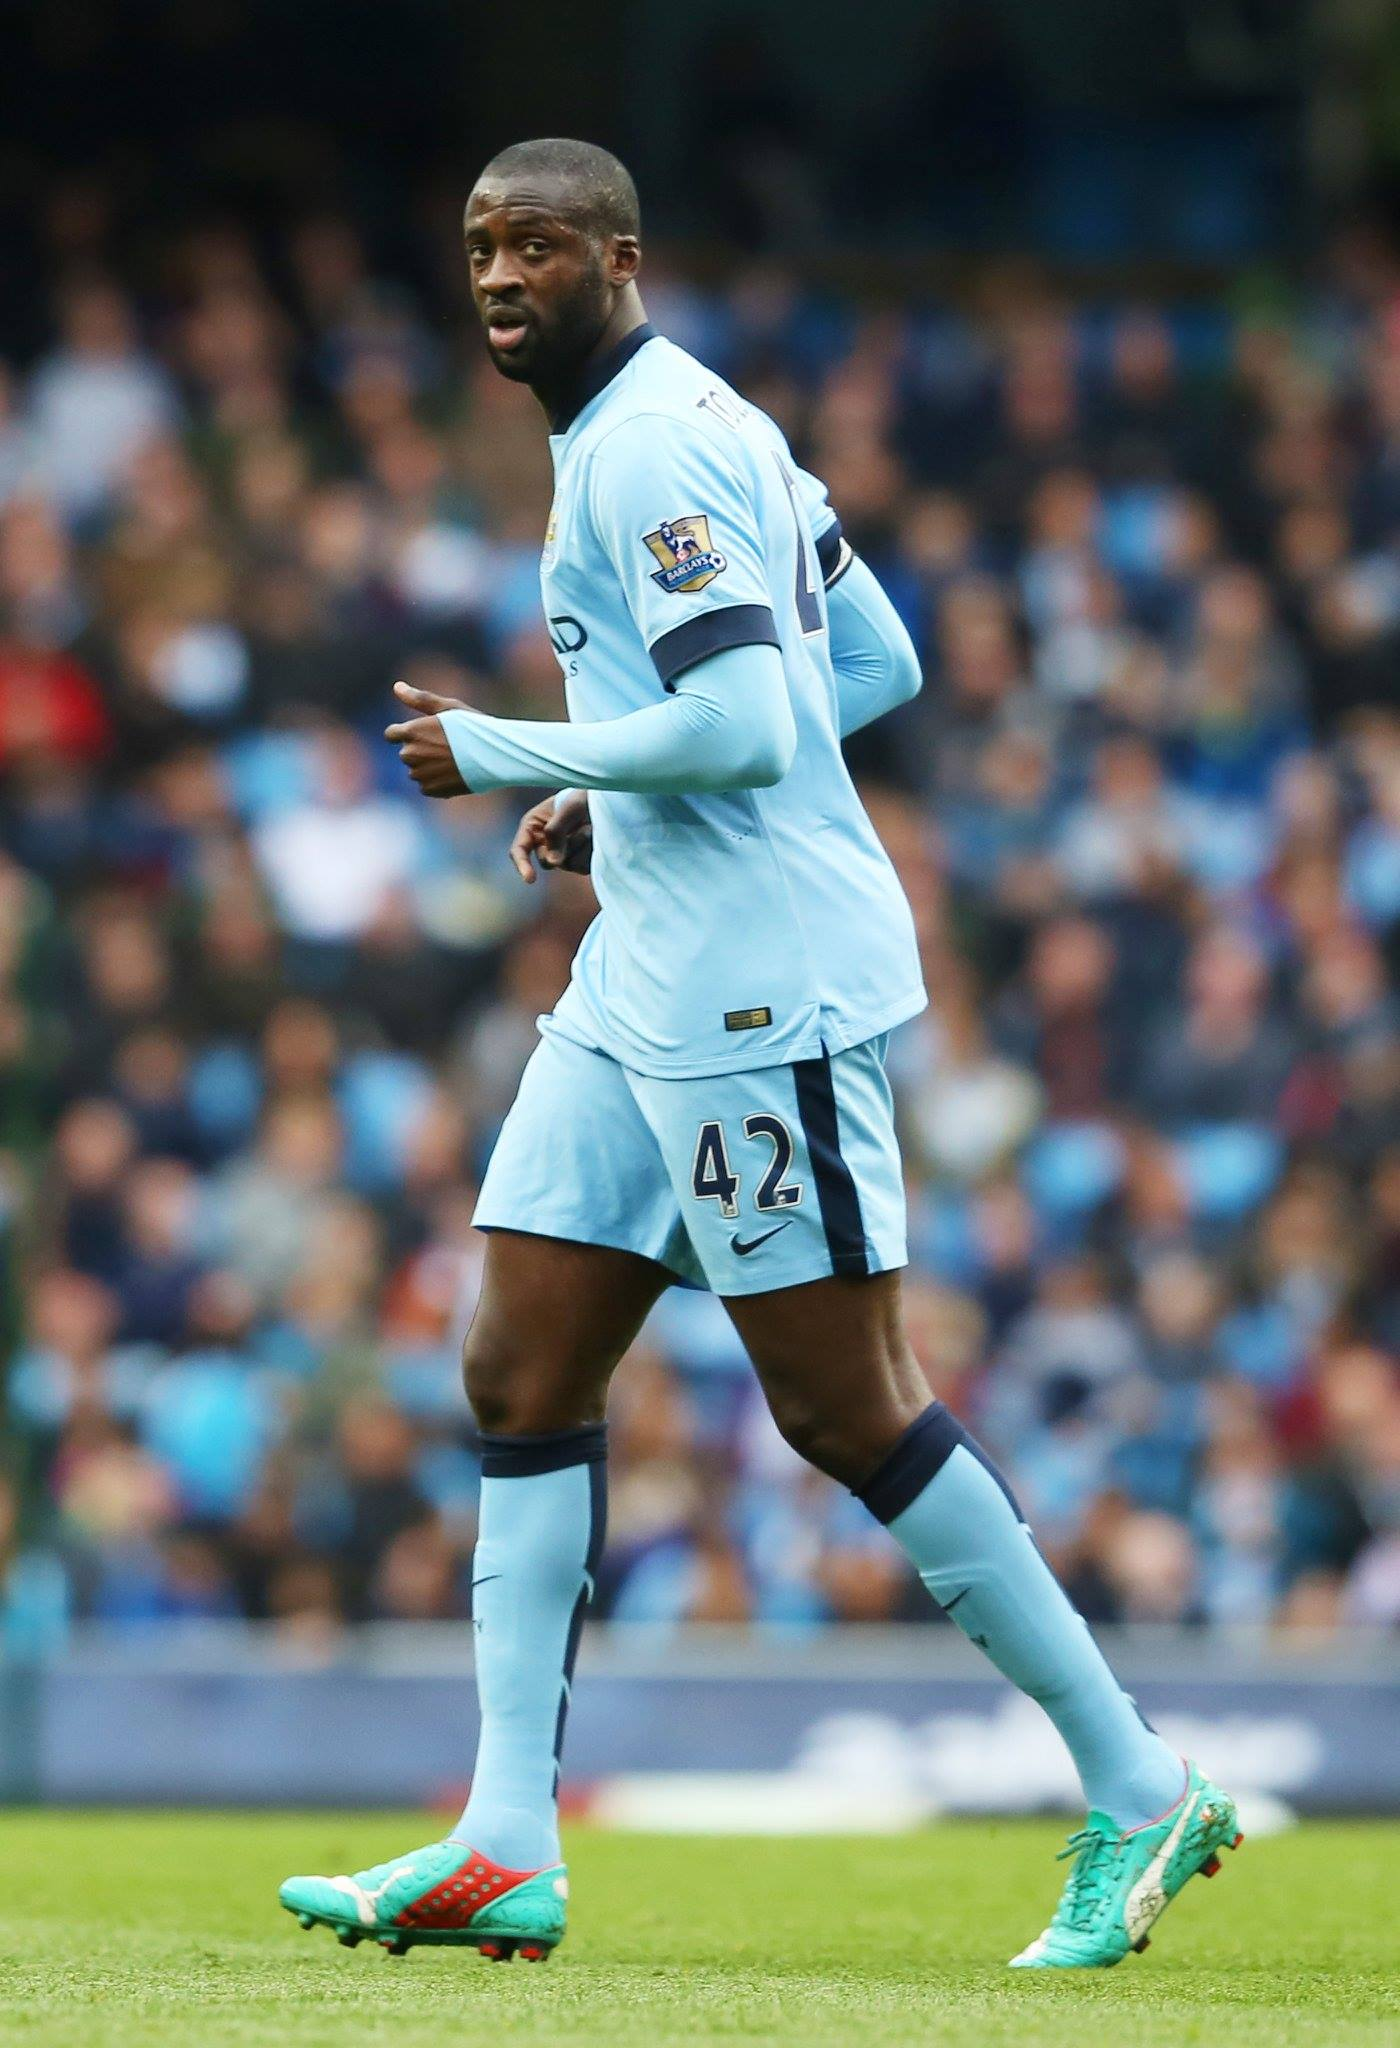 Walk on part - Yaya has only played a supporting role this season after being the main man last year. Courtesy@MCFC